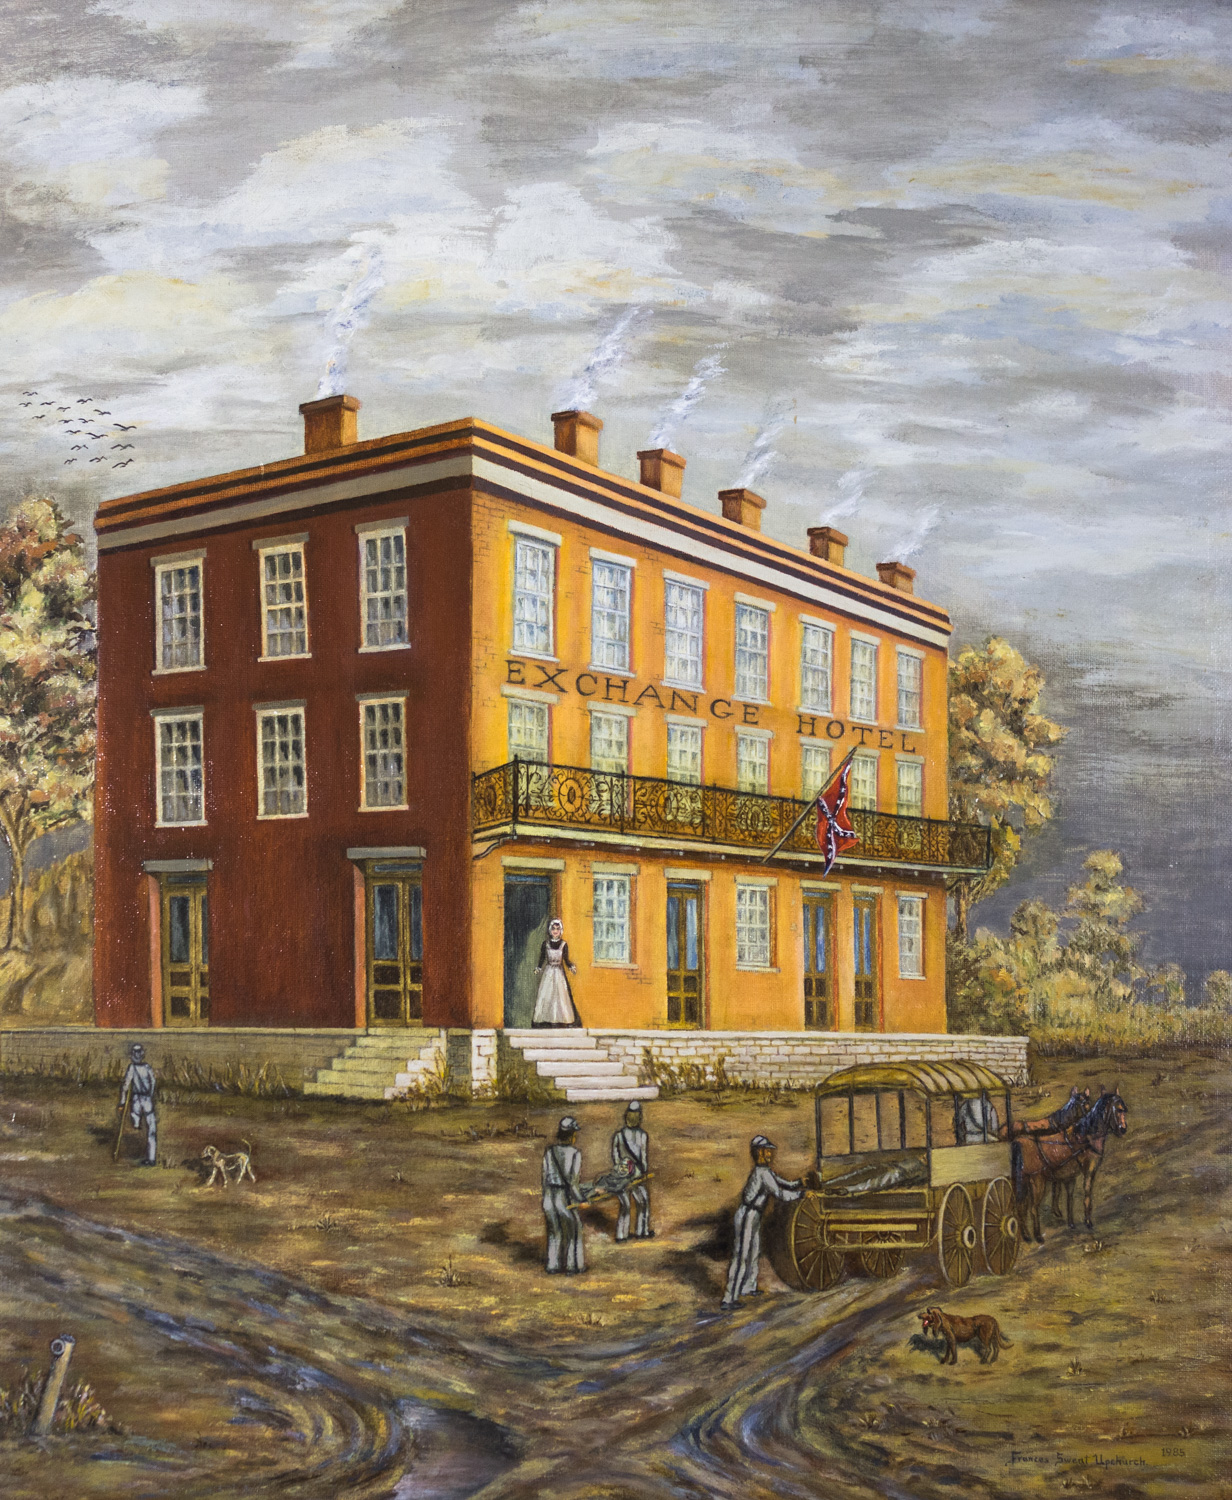 The Exchange Hotel, Frances Sweat upchurch, Oil on Canvas, 11 paintings collection from Foundation